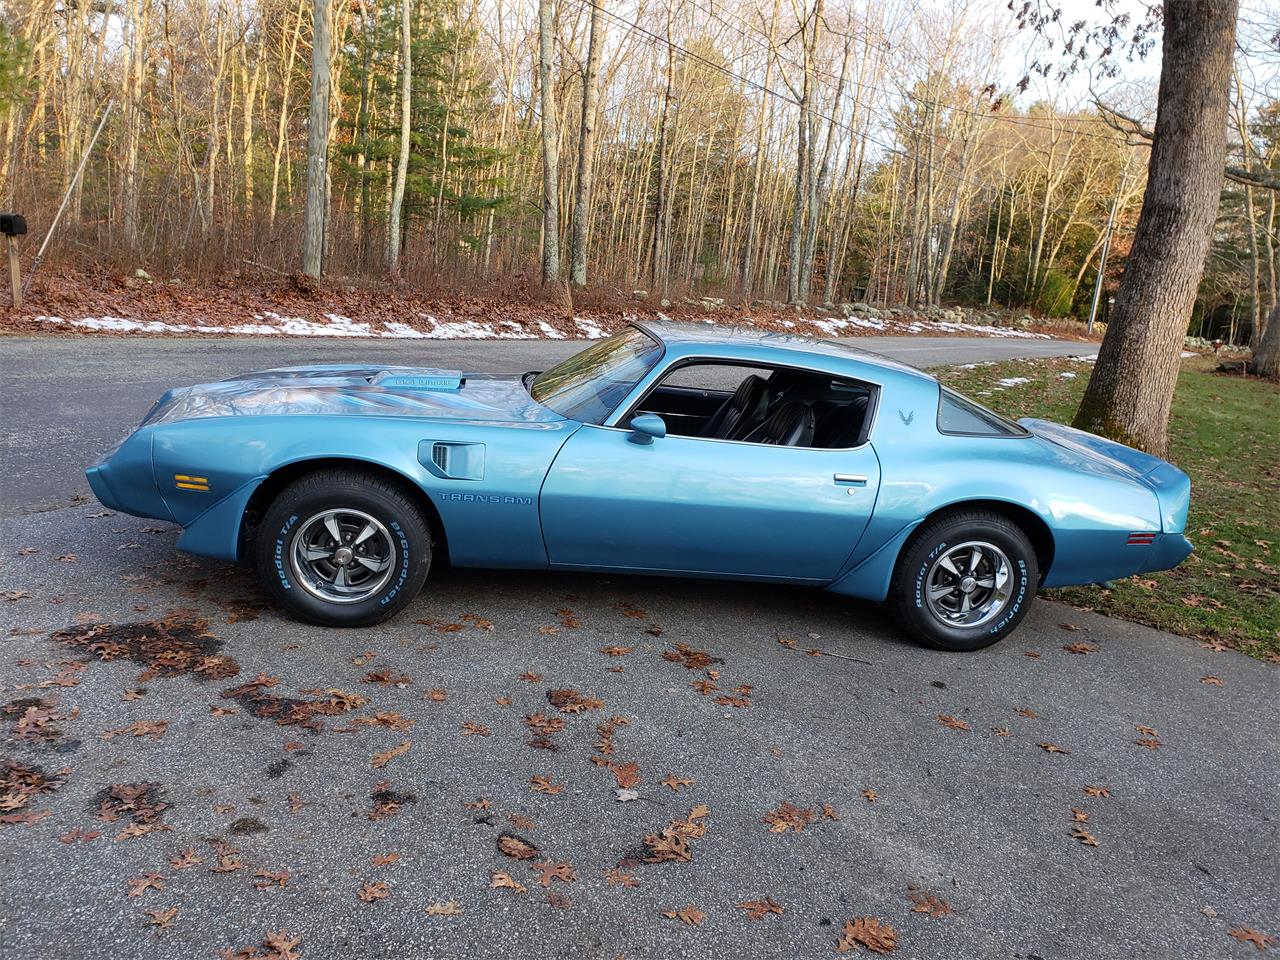 1979 Pontiac Firebird Trans Am (CC-1223982) for sale in Baltic, Connecticut